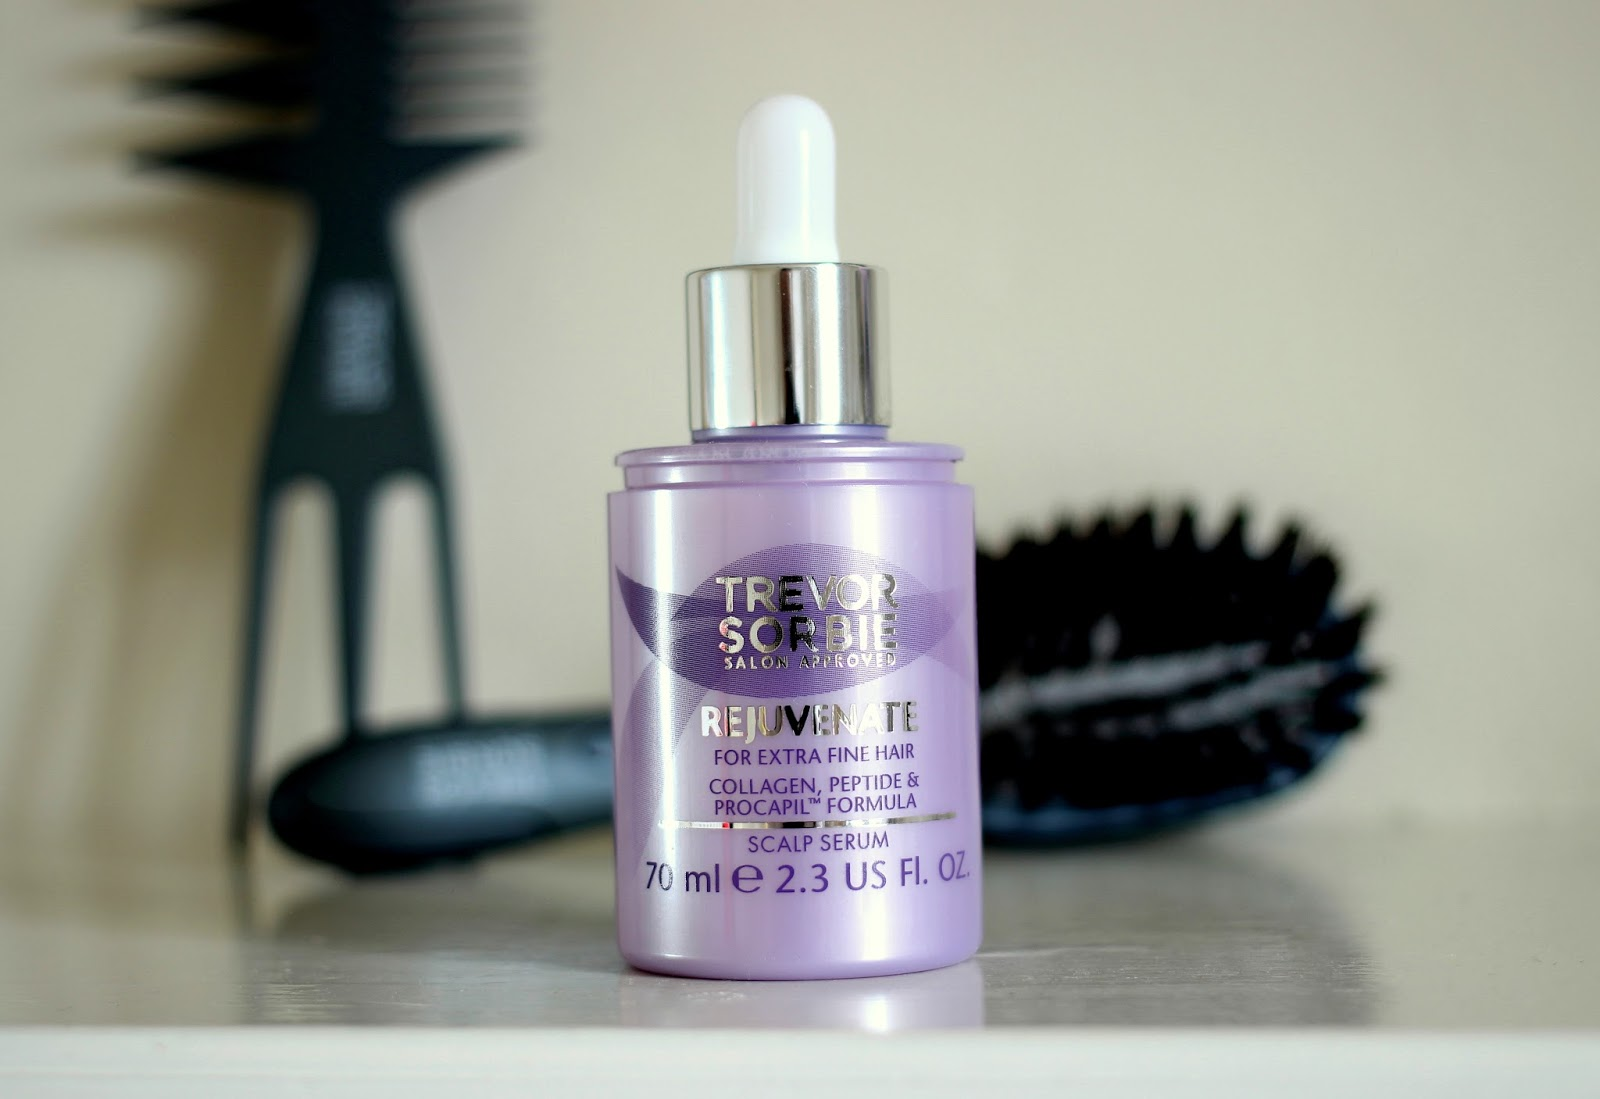 Trevor Sorbie Rejuvenate Scalp Serum Review